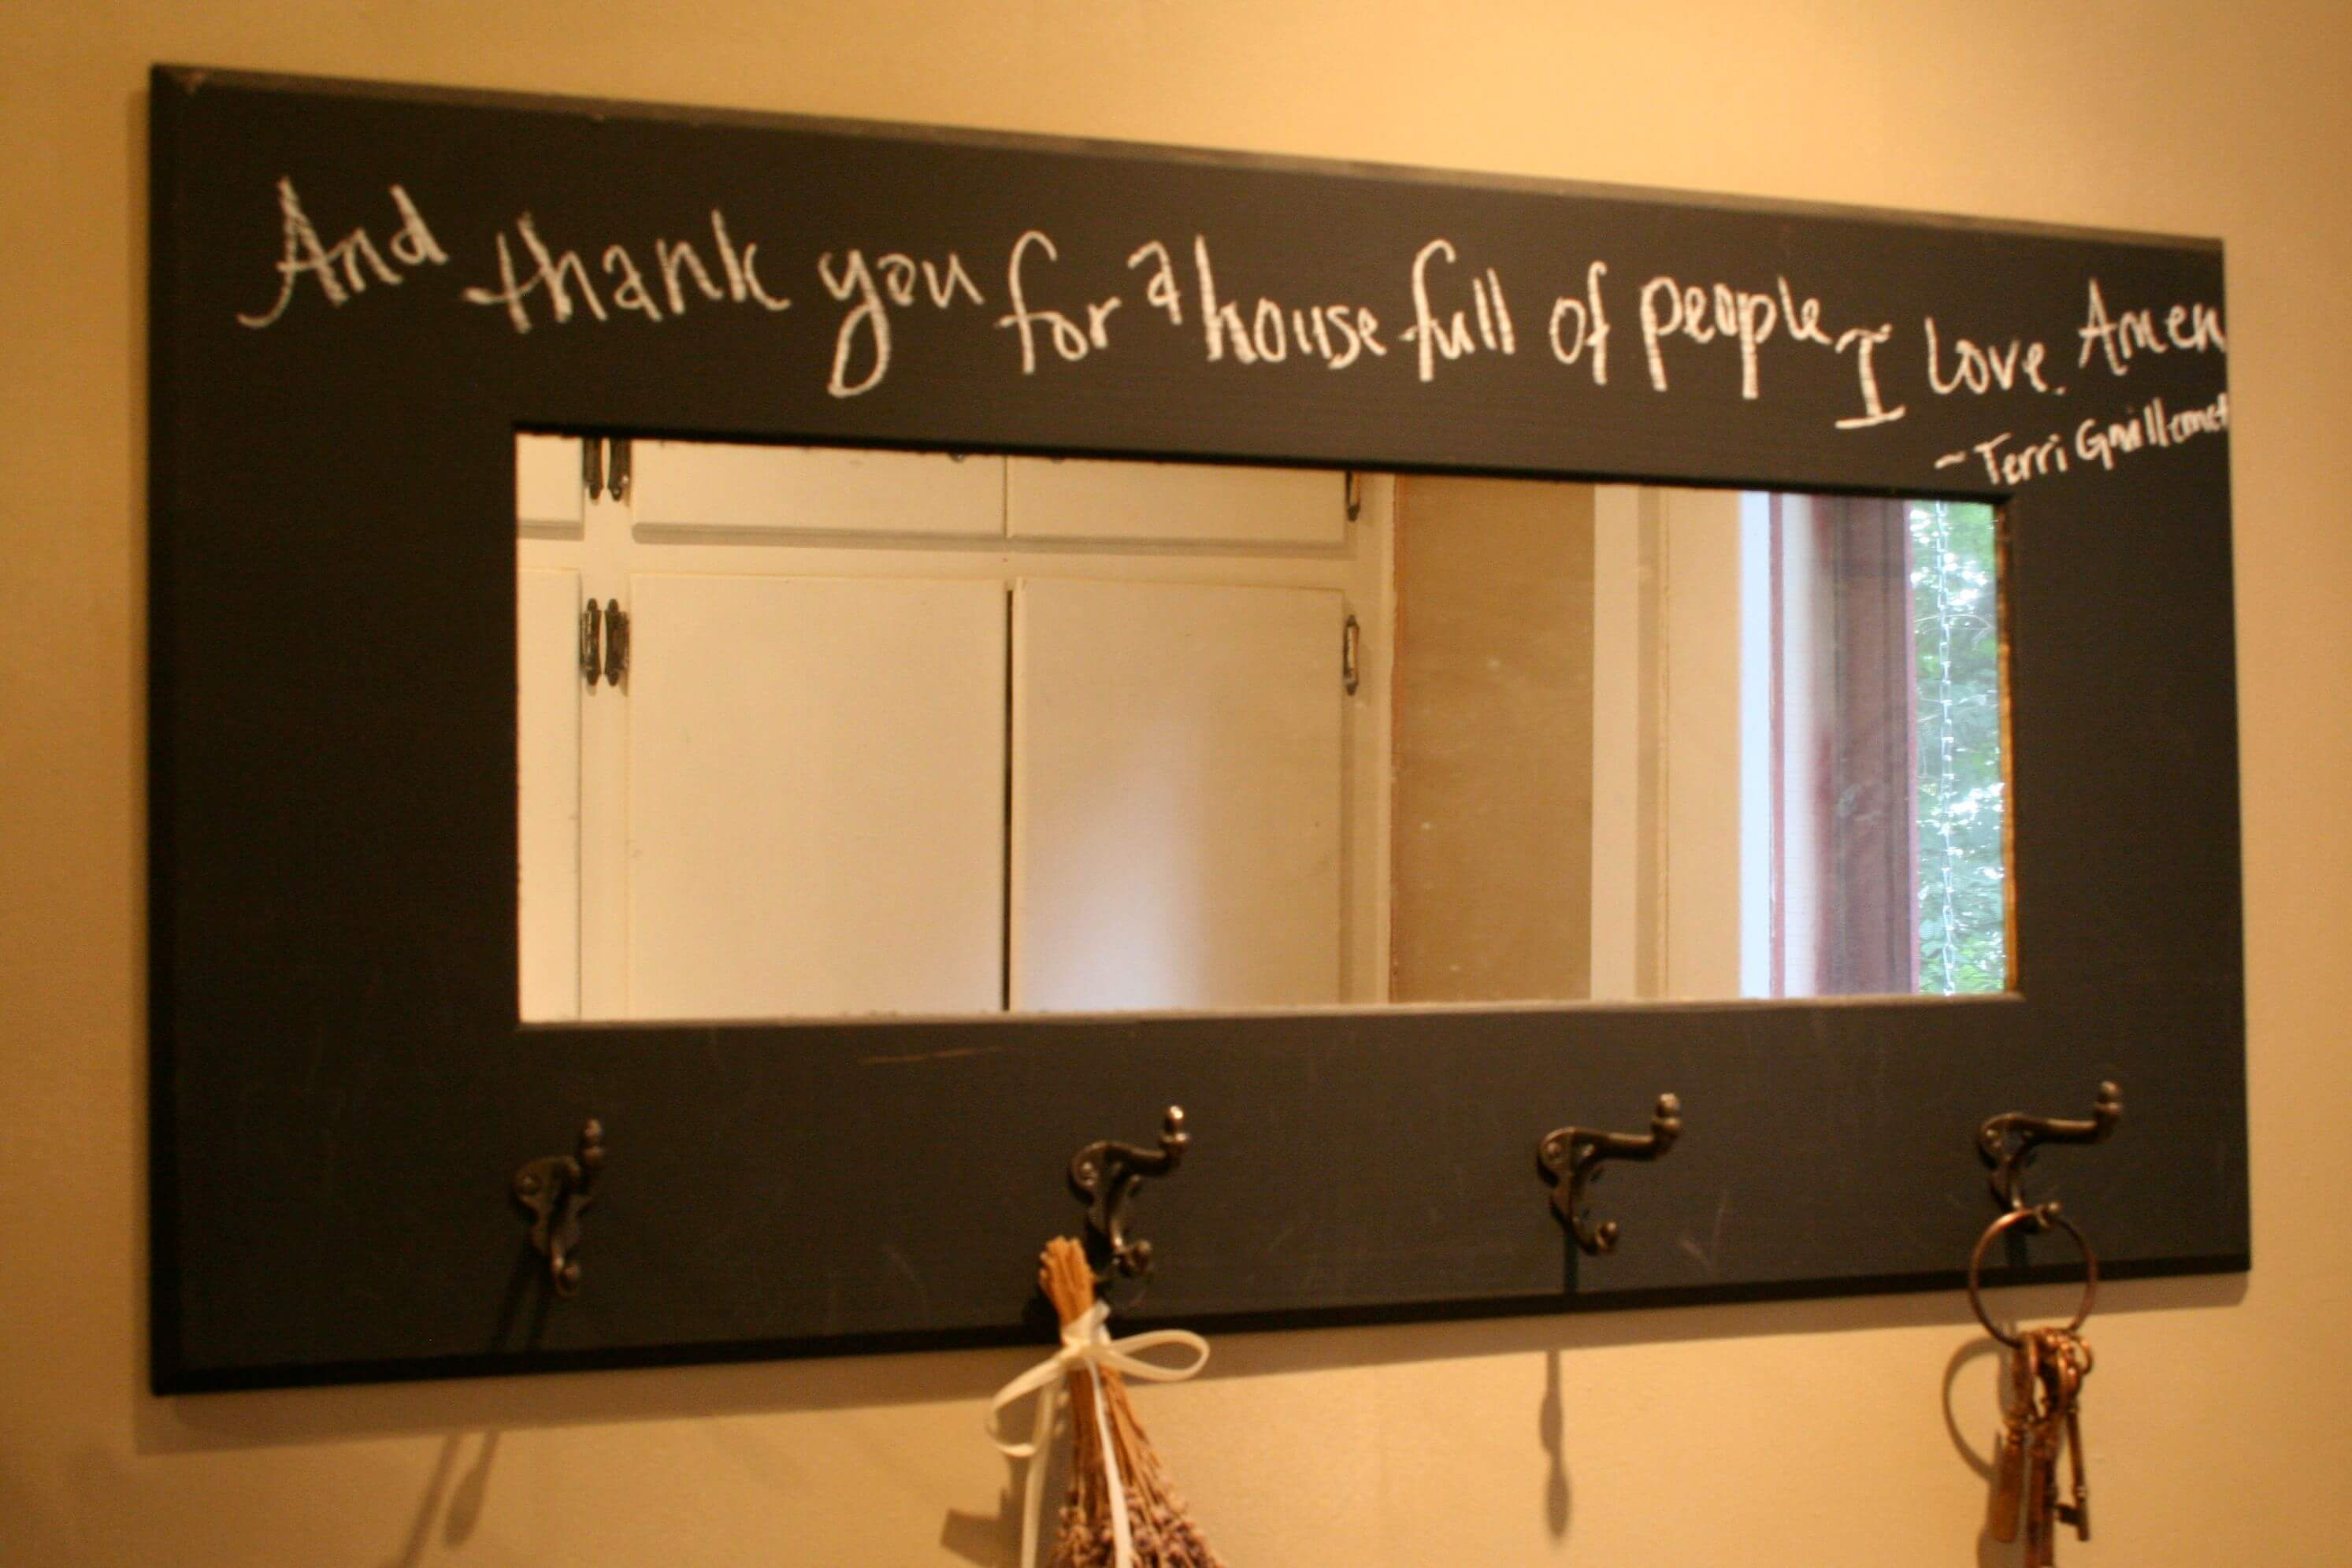 diy-chalkboard-with-mirror-and-coat-hook-for-mudroom-decor-ideas-also-interior-paint-color-with-chalkboard-wall-ideas-and-closet-plus-window-treatment-with-interior-design-and-framed-chalk-board